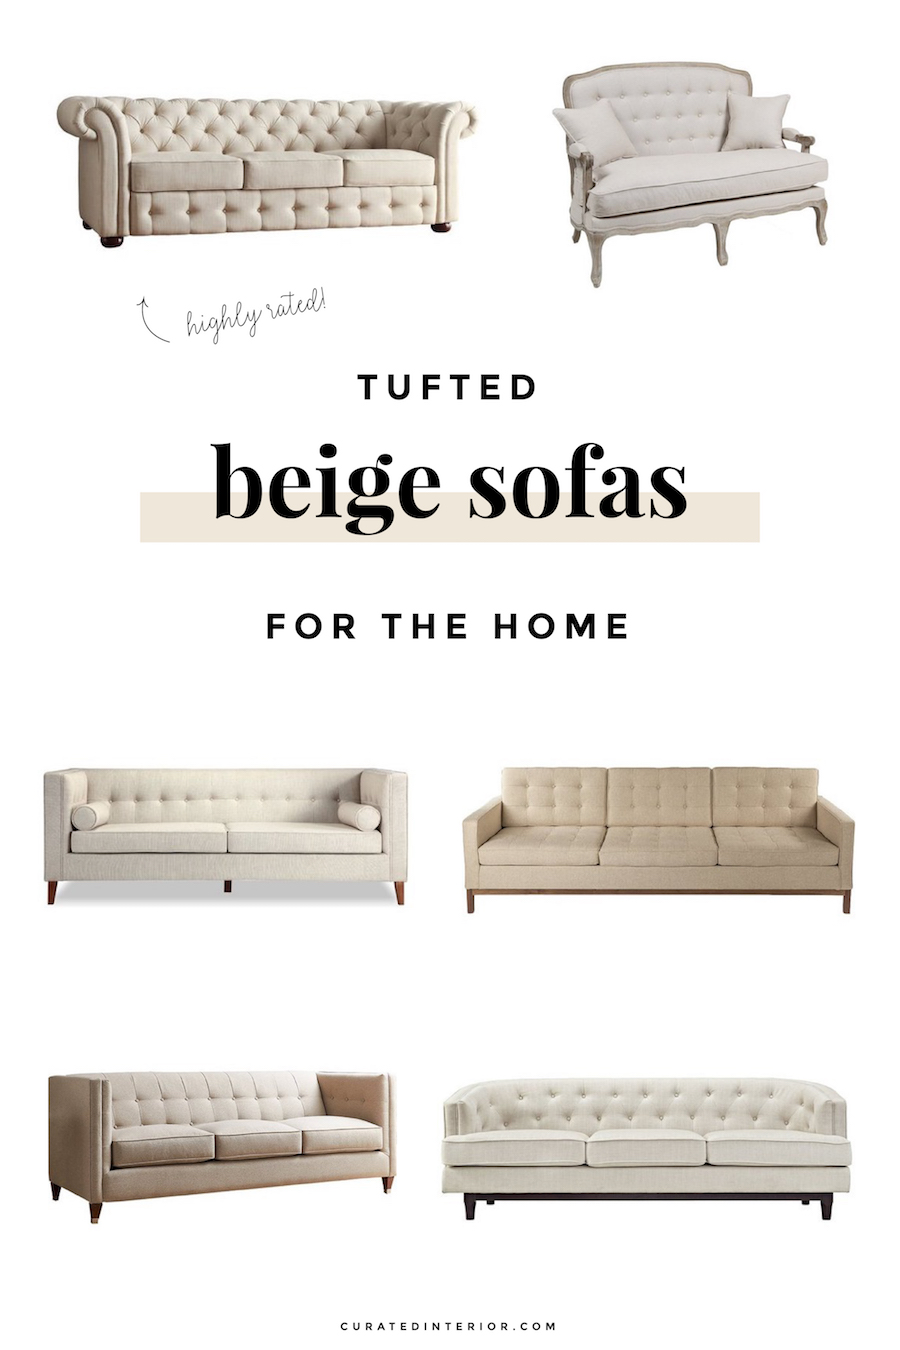 Tufted Beige Sofas